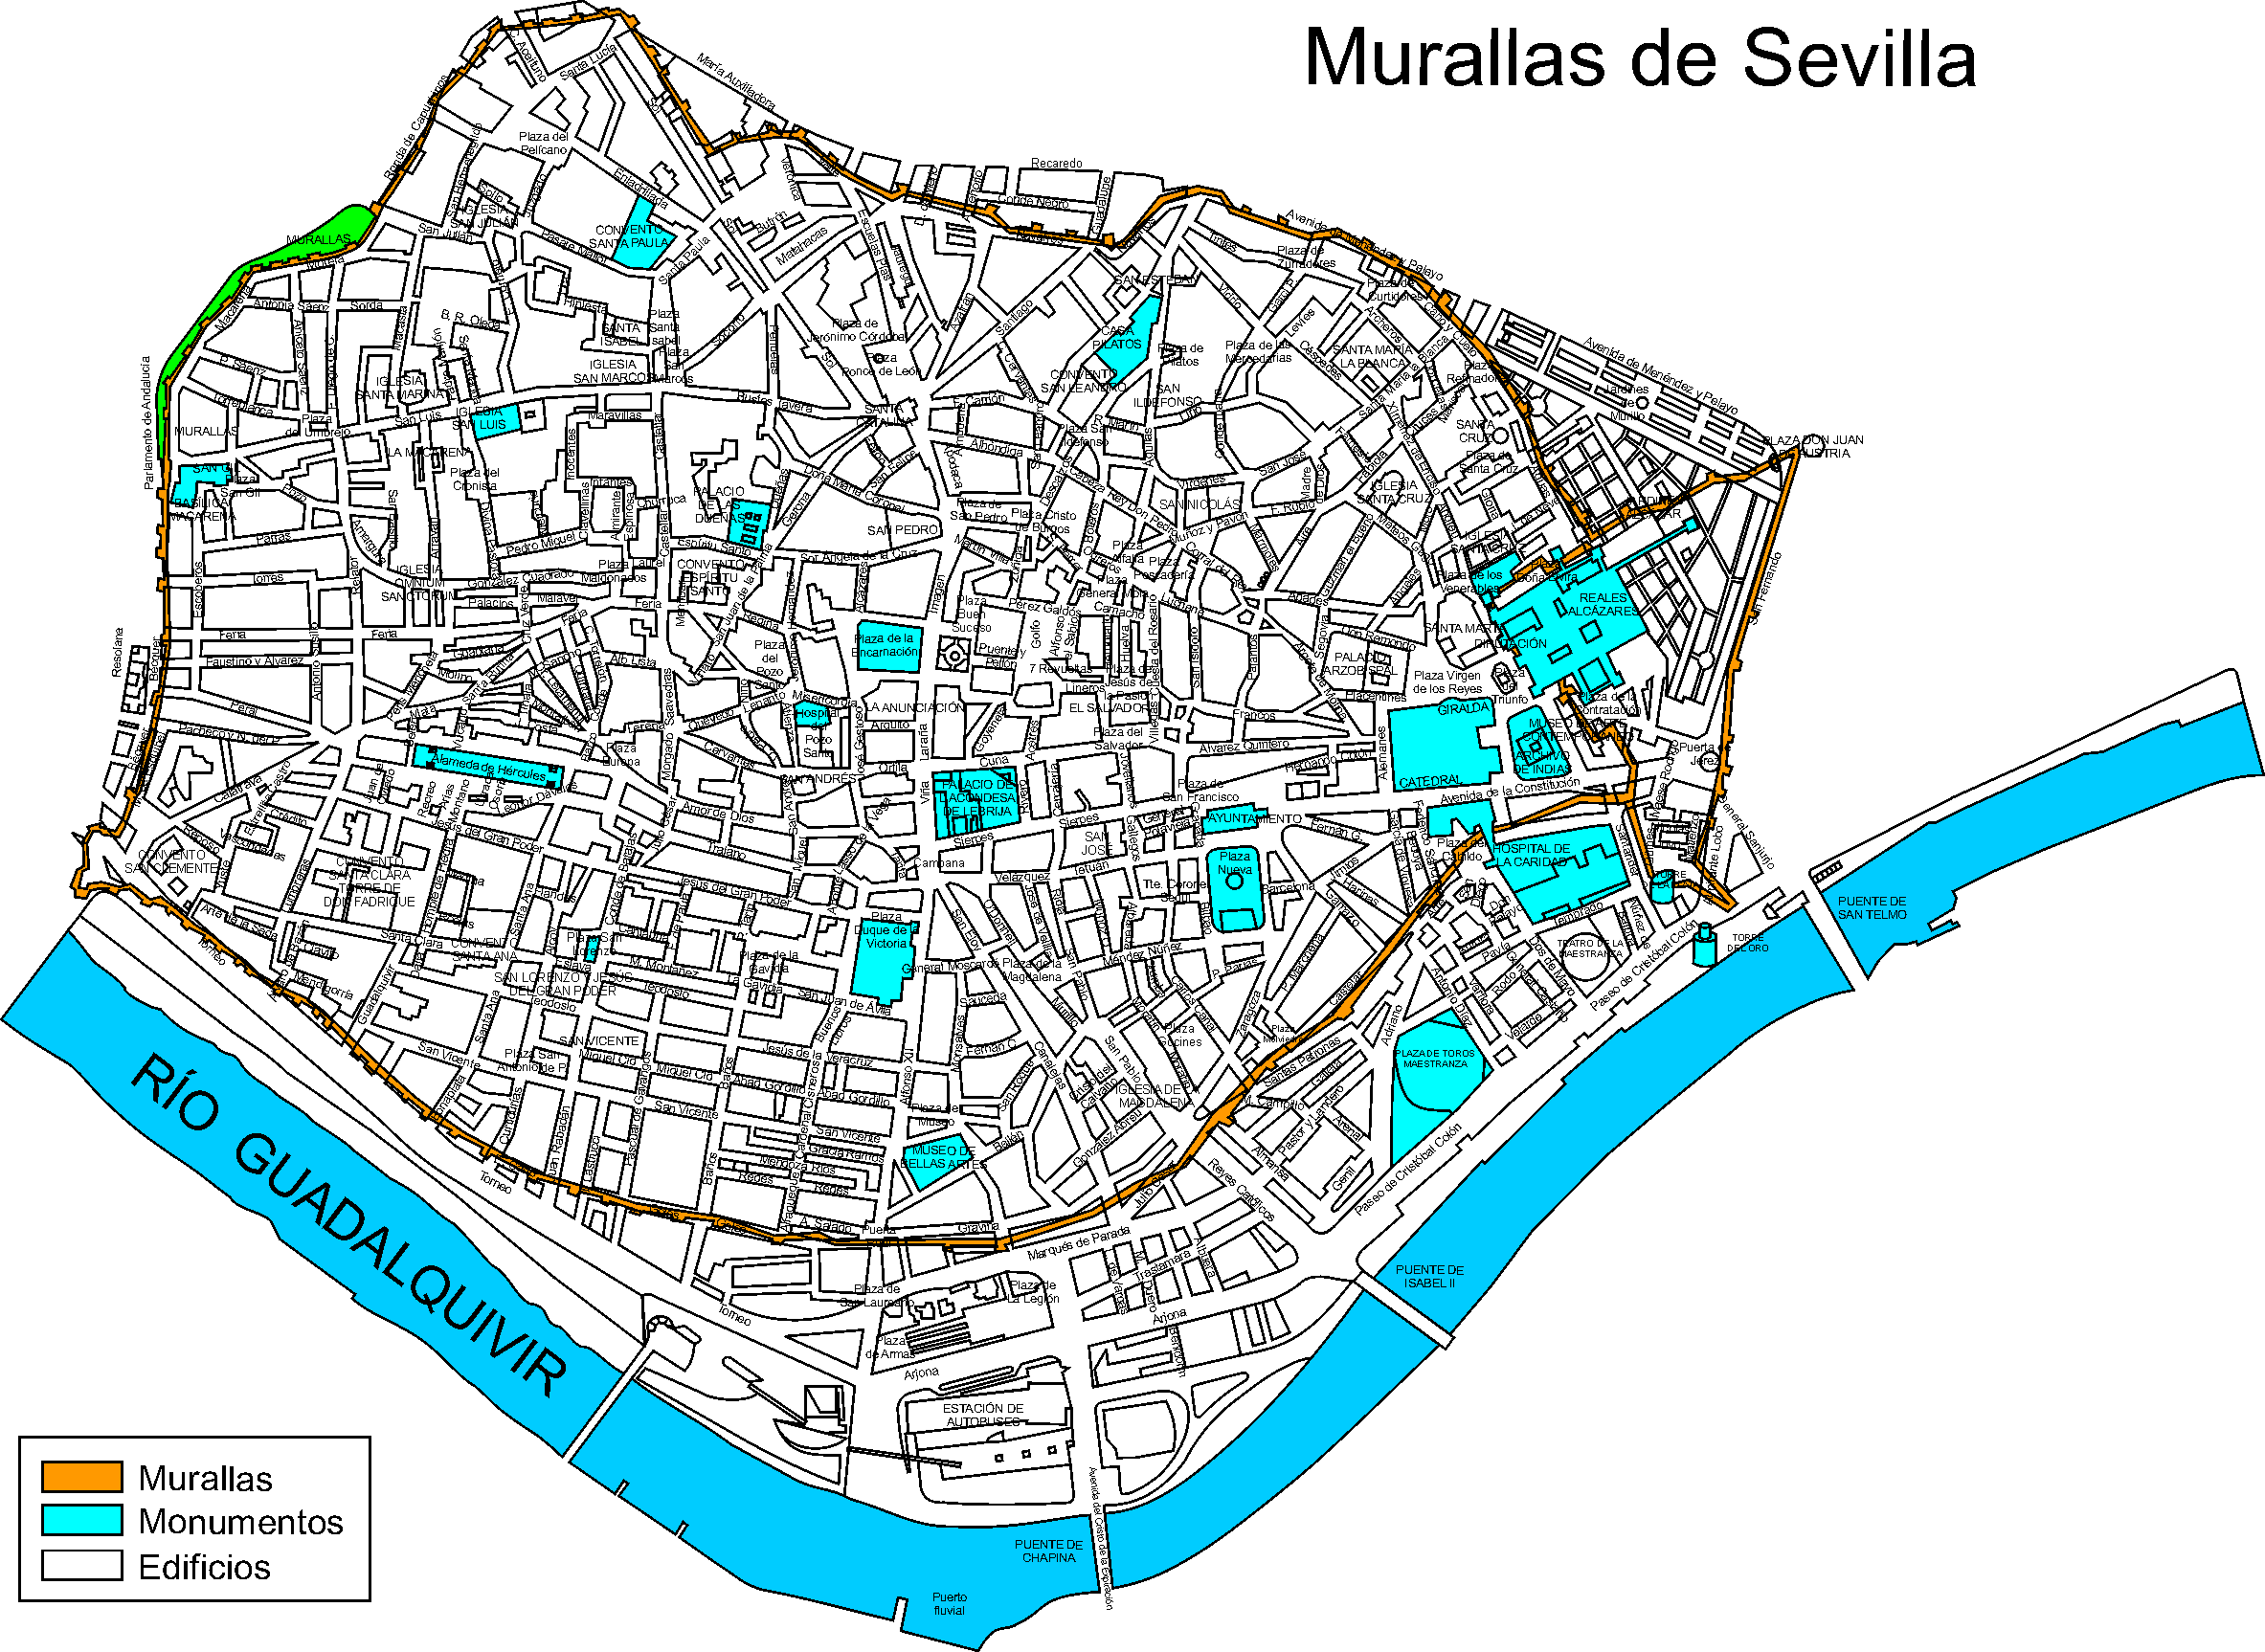 Walls of Sevilla XVII century